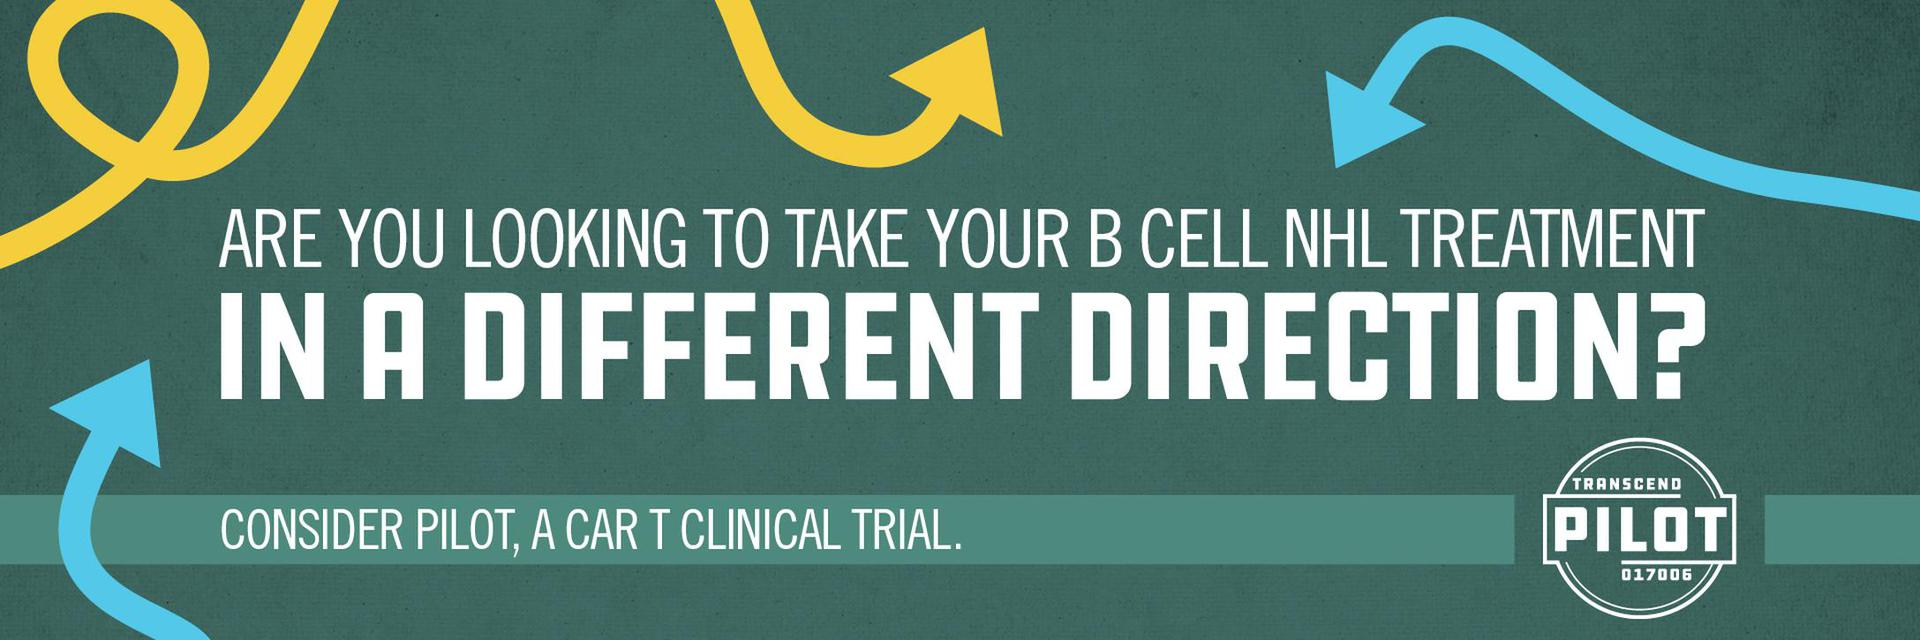 trial with title PILOT - B cell non-Hodgkin lymphoma - TRANSCEND-PILOT-017006 - US